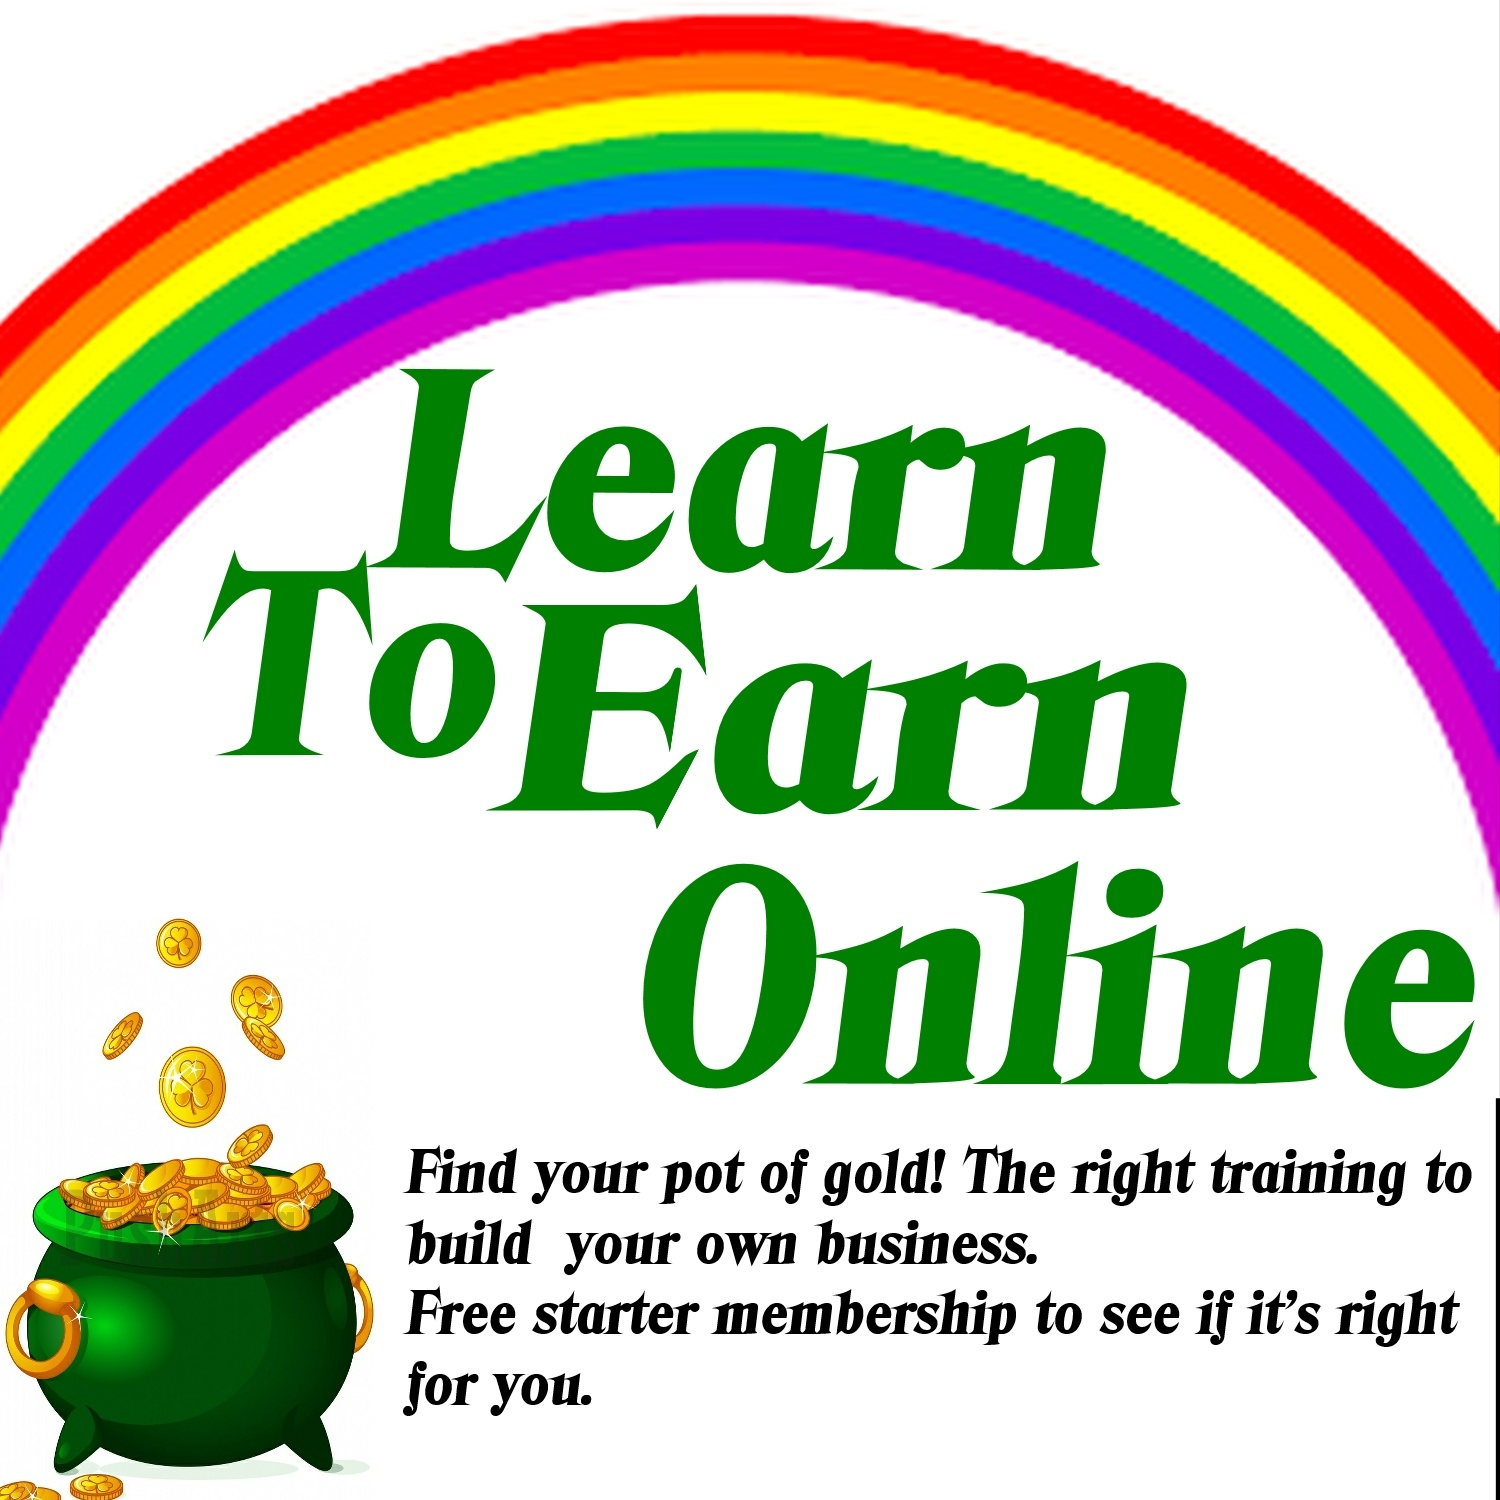 Learn to earn online